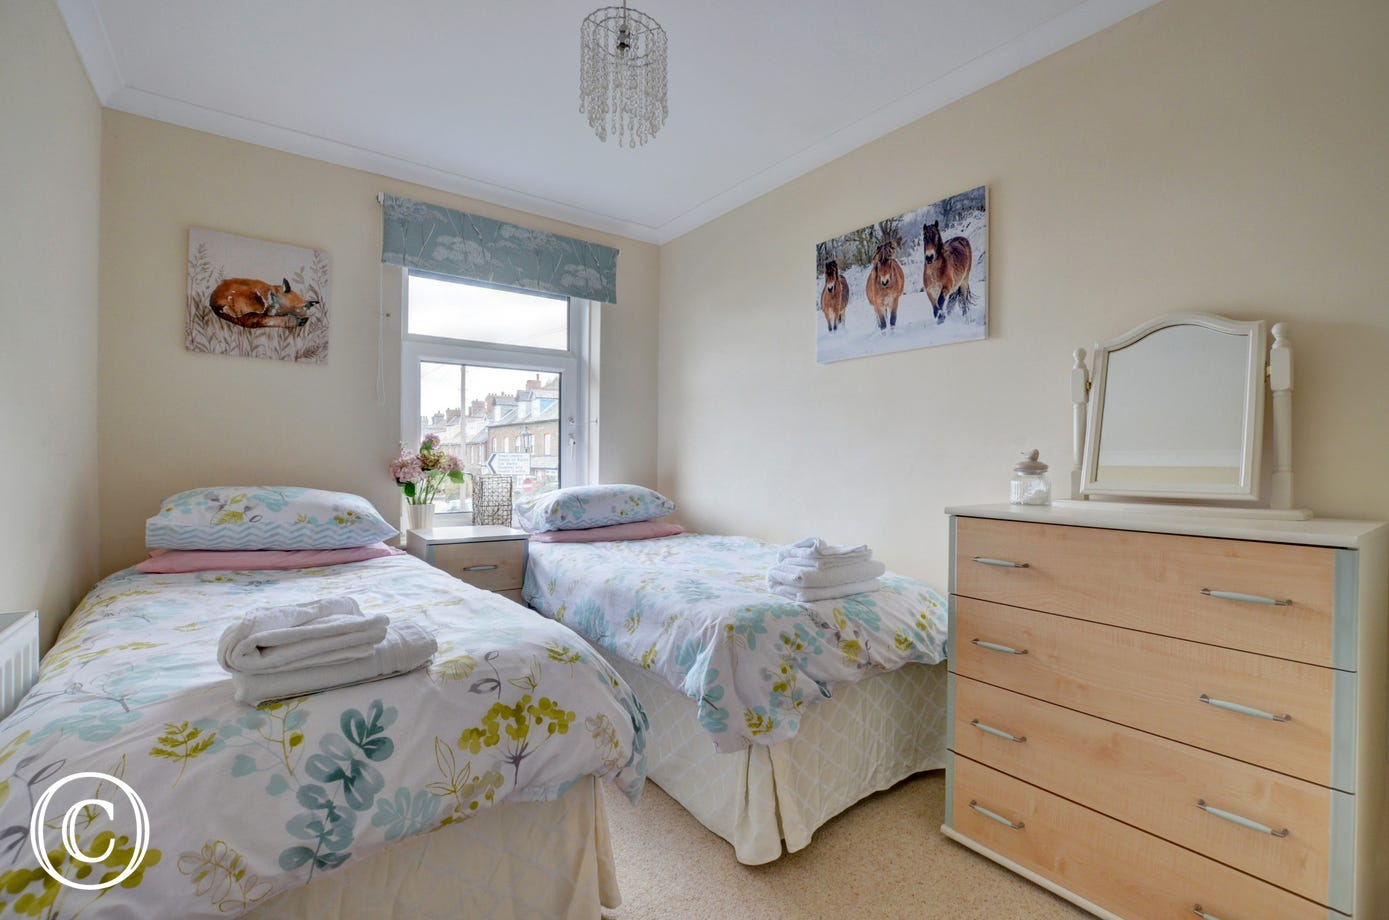 The third bedroom has twin beds, great for children or adults